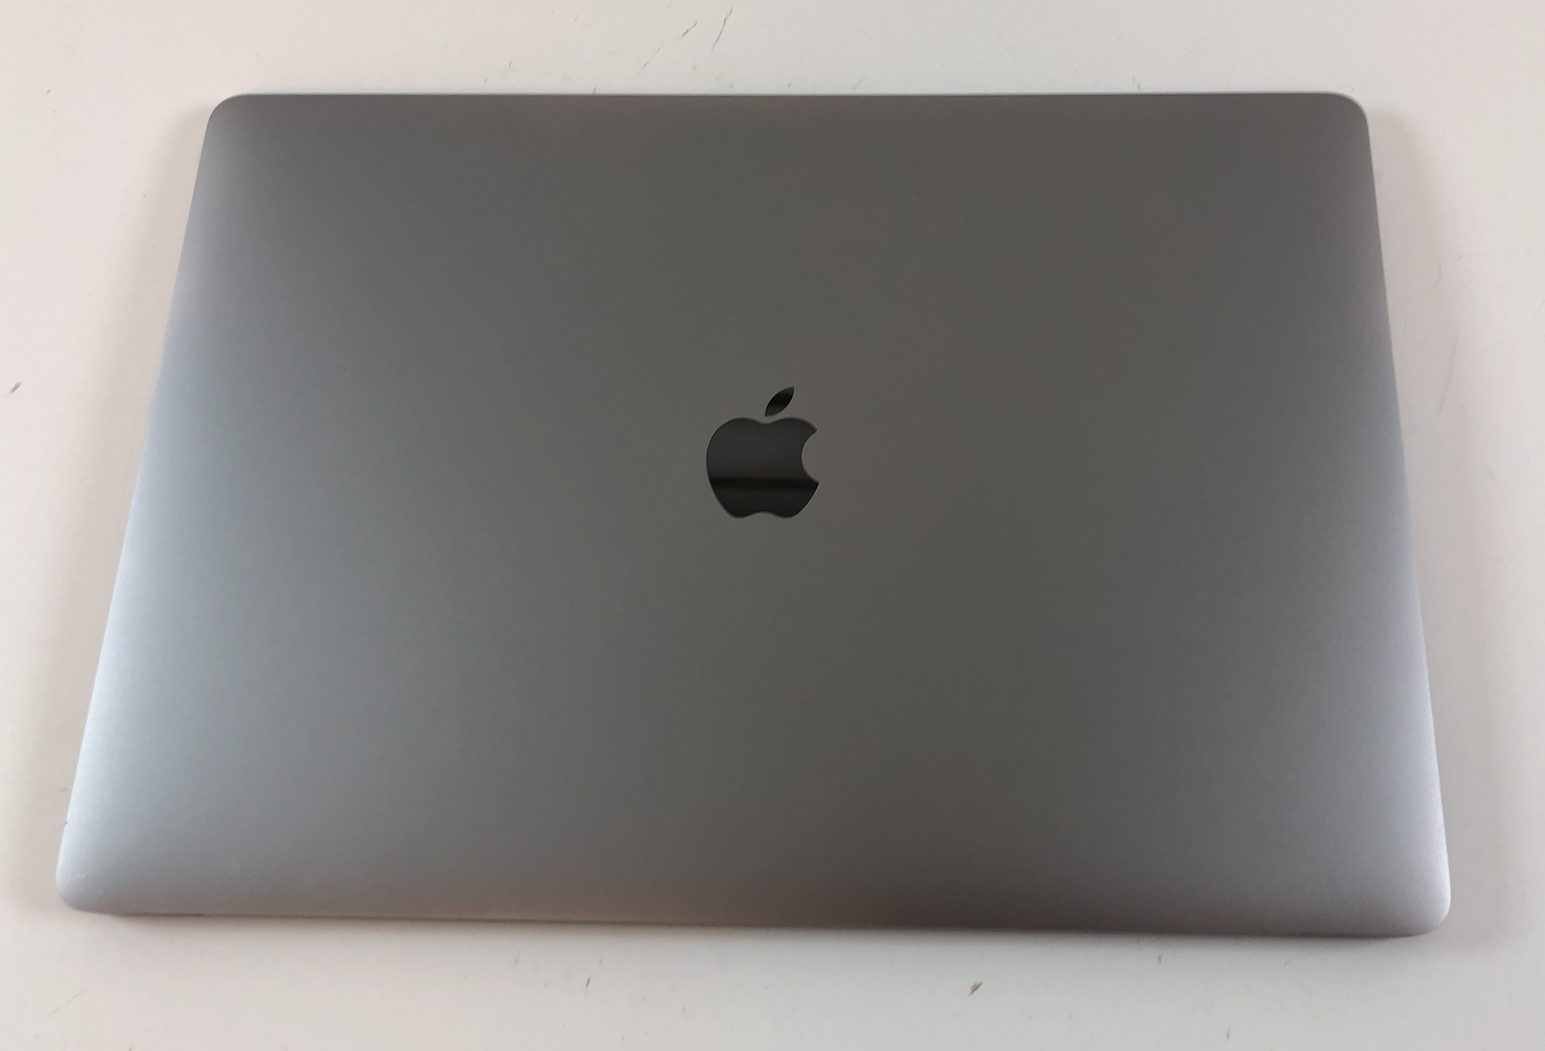 "MacBook Pro 15"" Touch Bar Late 2016 (Intel Quad-Core i7 2.9 GHz 16 GB RAM 2 TB SSD), Space Gray, Intel Quad-Core i7 2.9 GHz, 16 GB RAM, 2 TB SSD, Afbeelding 2"